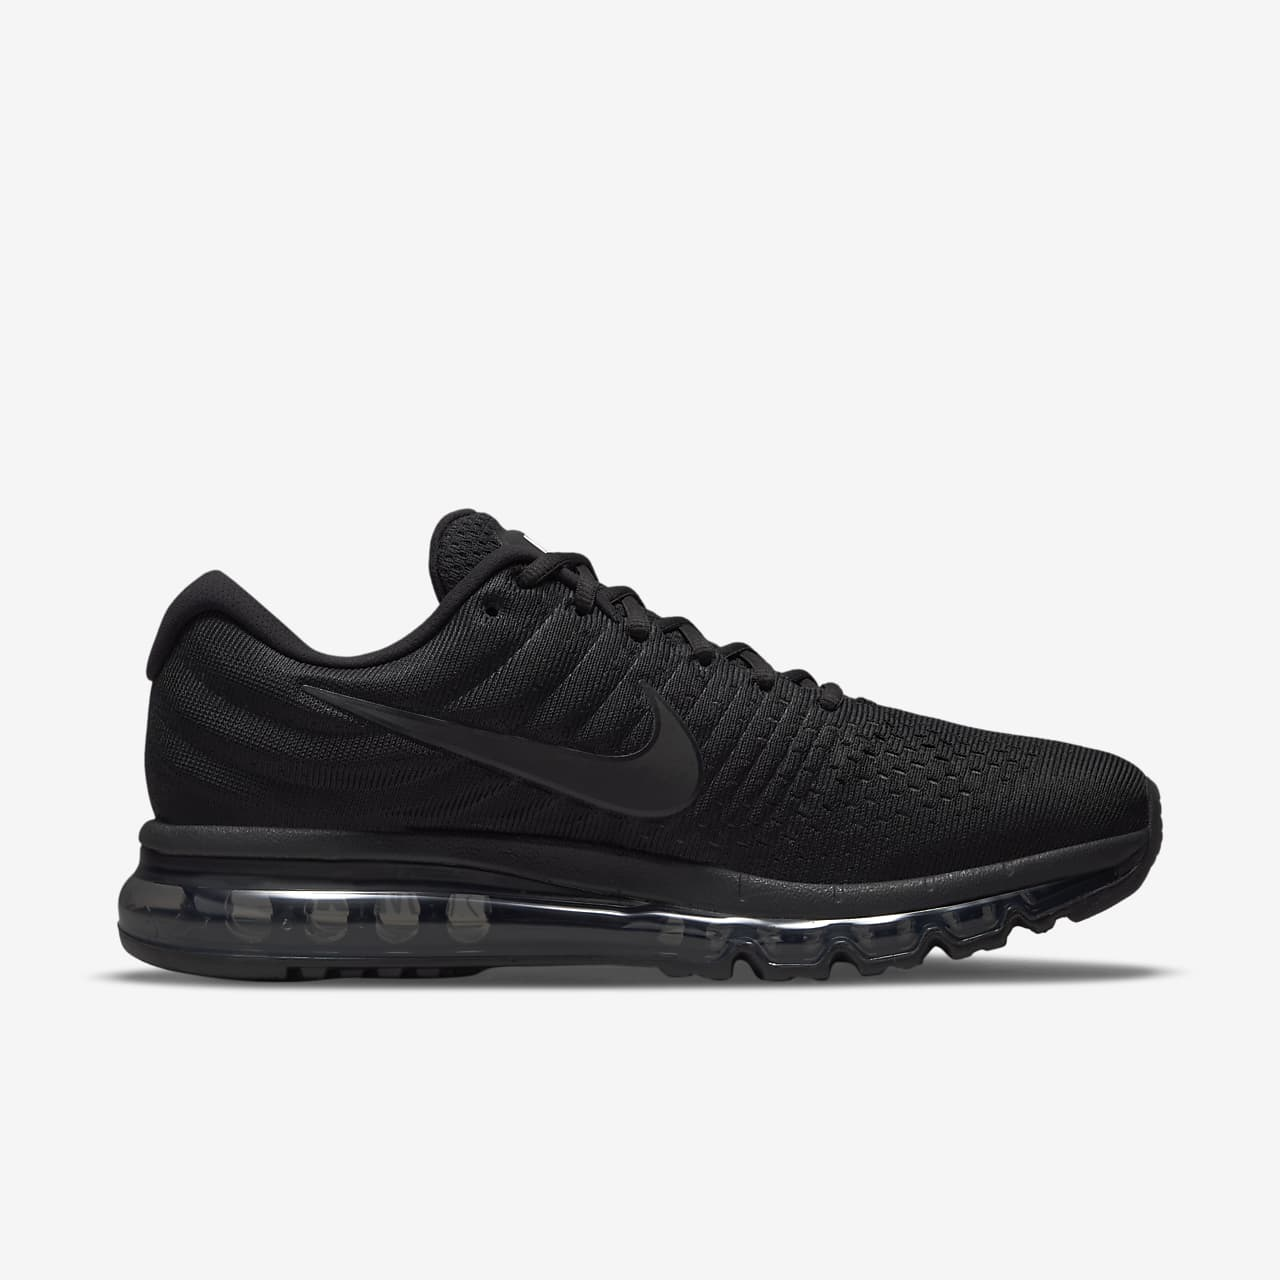 f96029a1451 Nike Air Max 2017 Men s Shoe. Nike.com AU